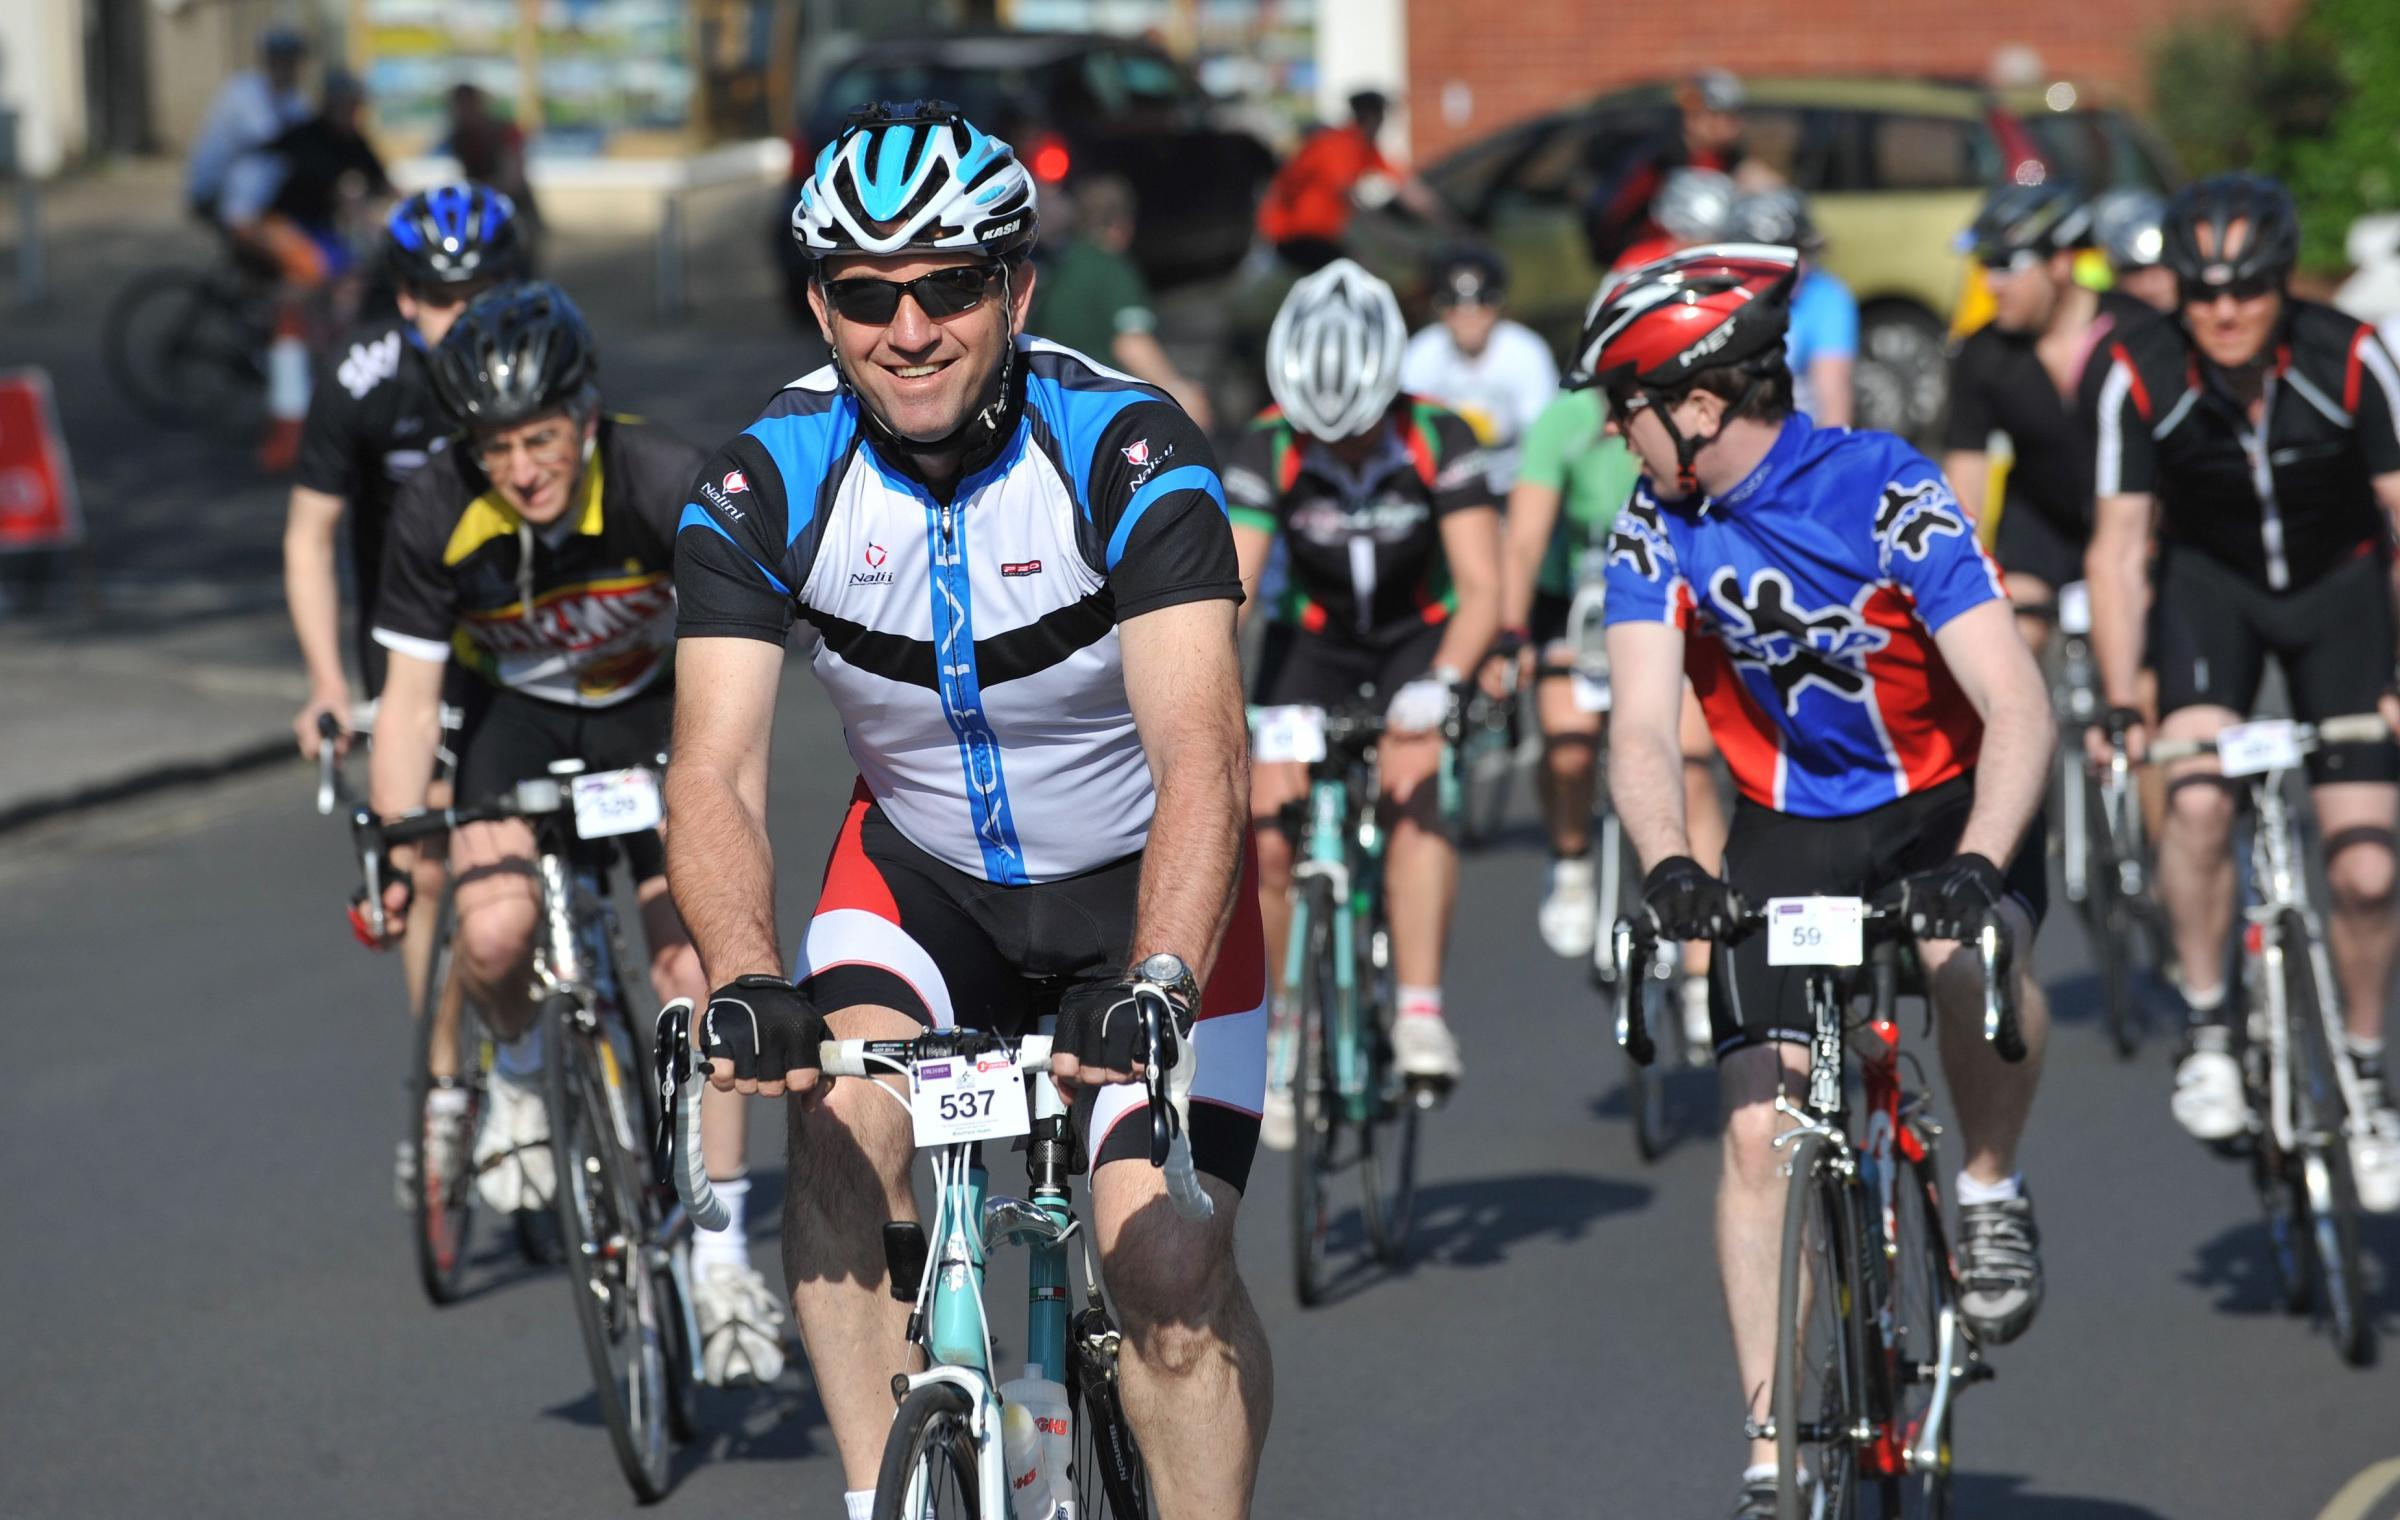 Hundreds of cyclists gather for charity ride